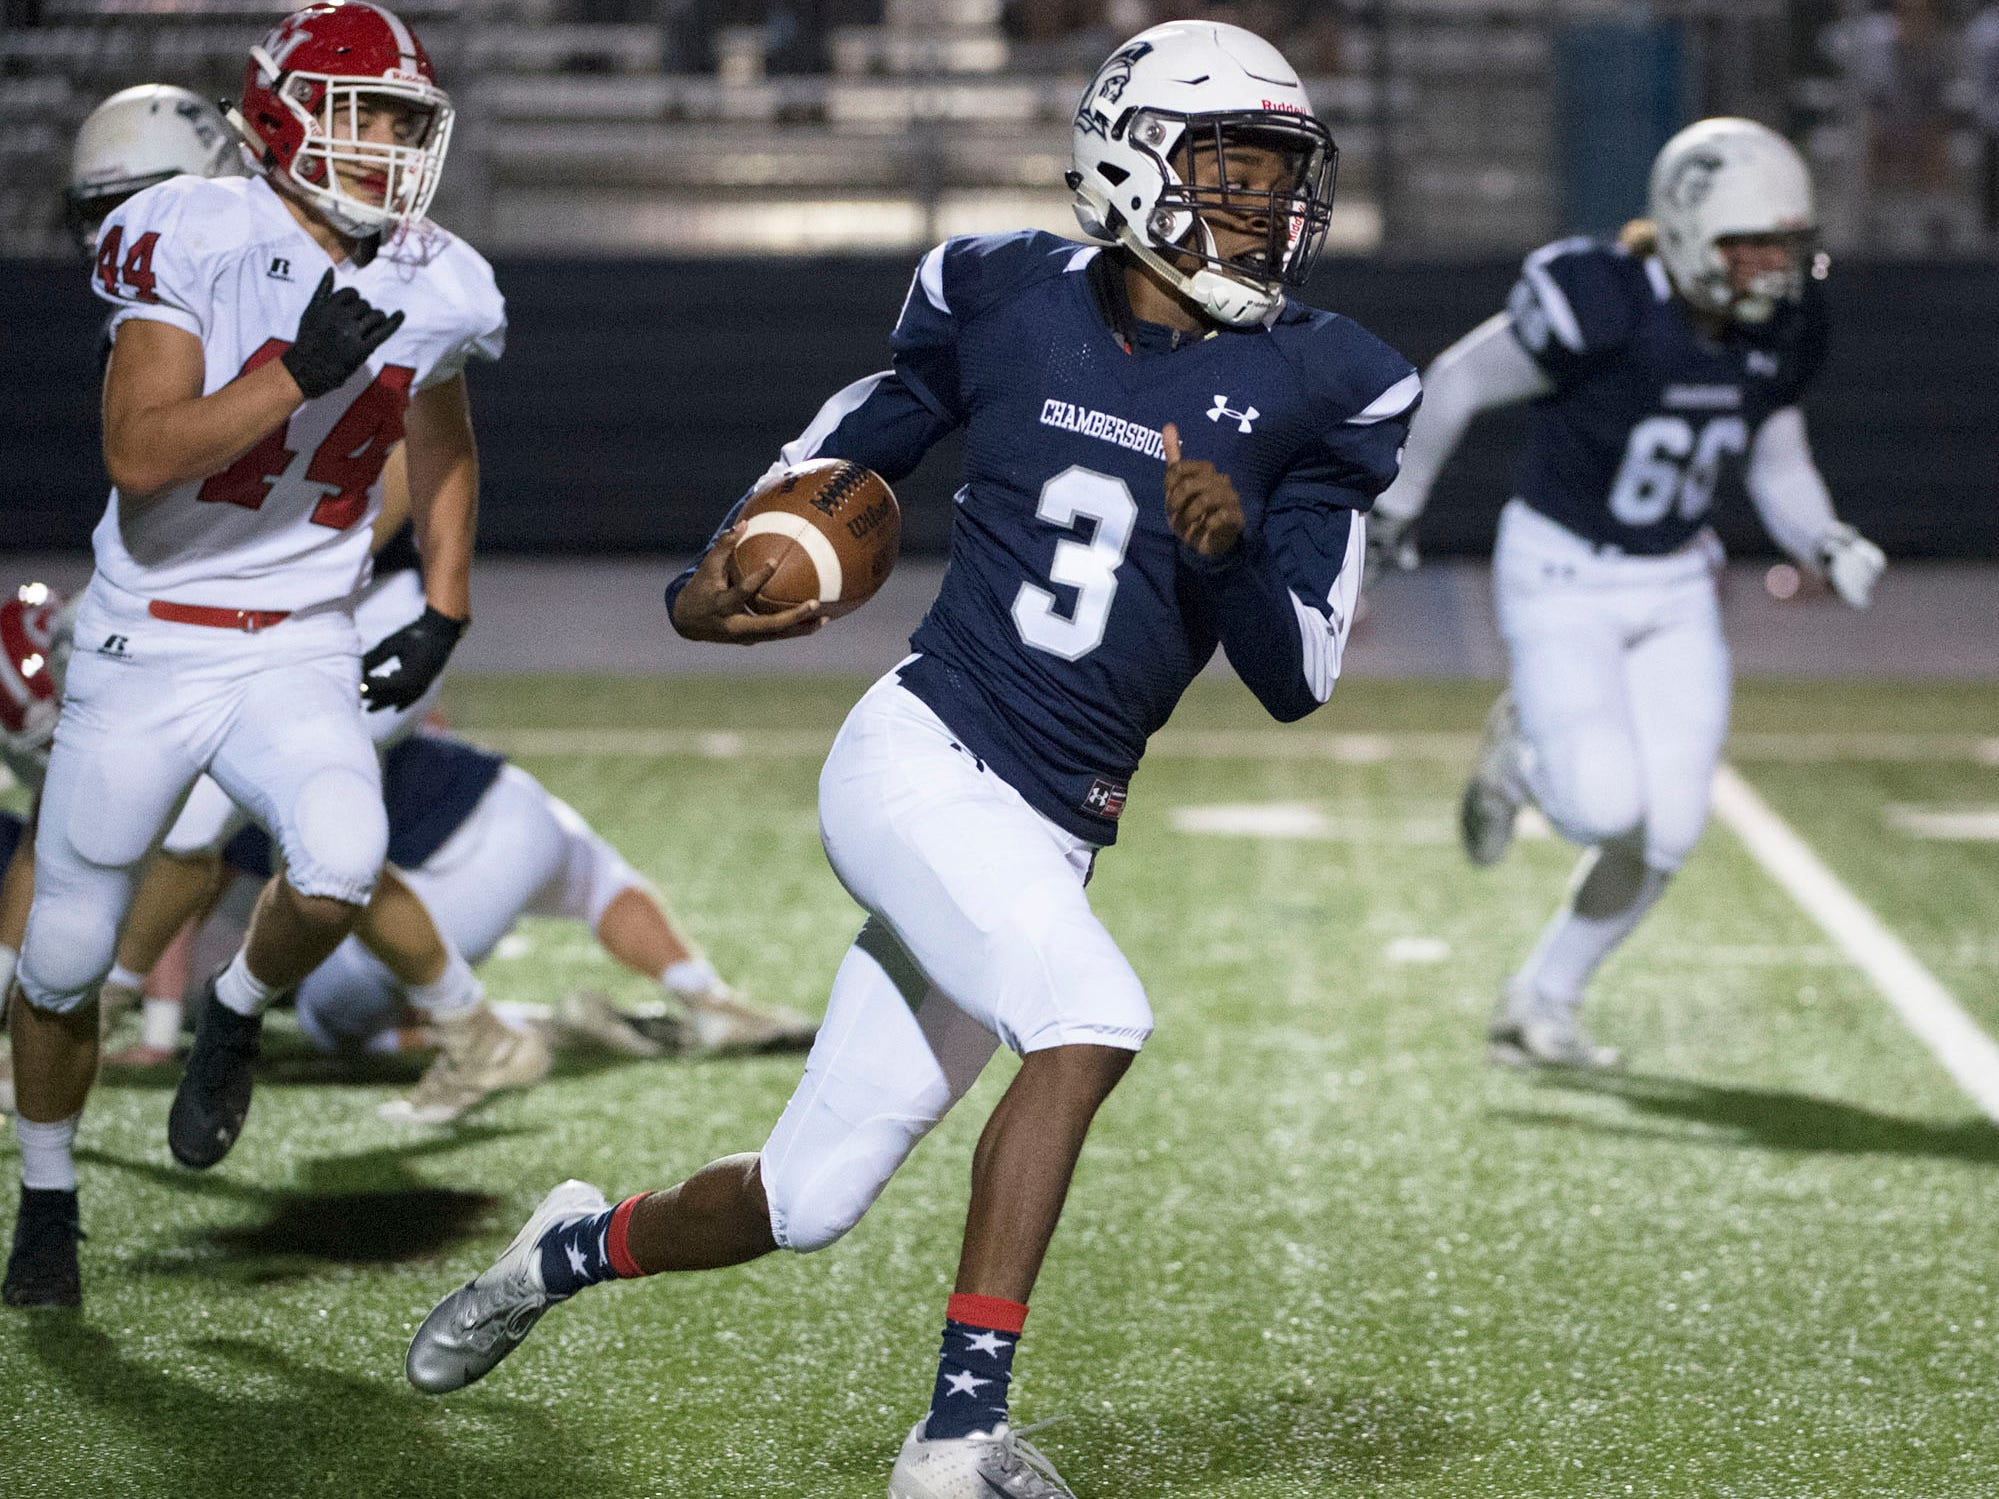 Chambersburg's Tyeshawn Worrell returns a kick for the Trojans. Chambersburg Trojans are 5-1 after a homecoming victory over Cumberland Valley 28-14 in PIAA football on Friday, Sept. 28, 2018.